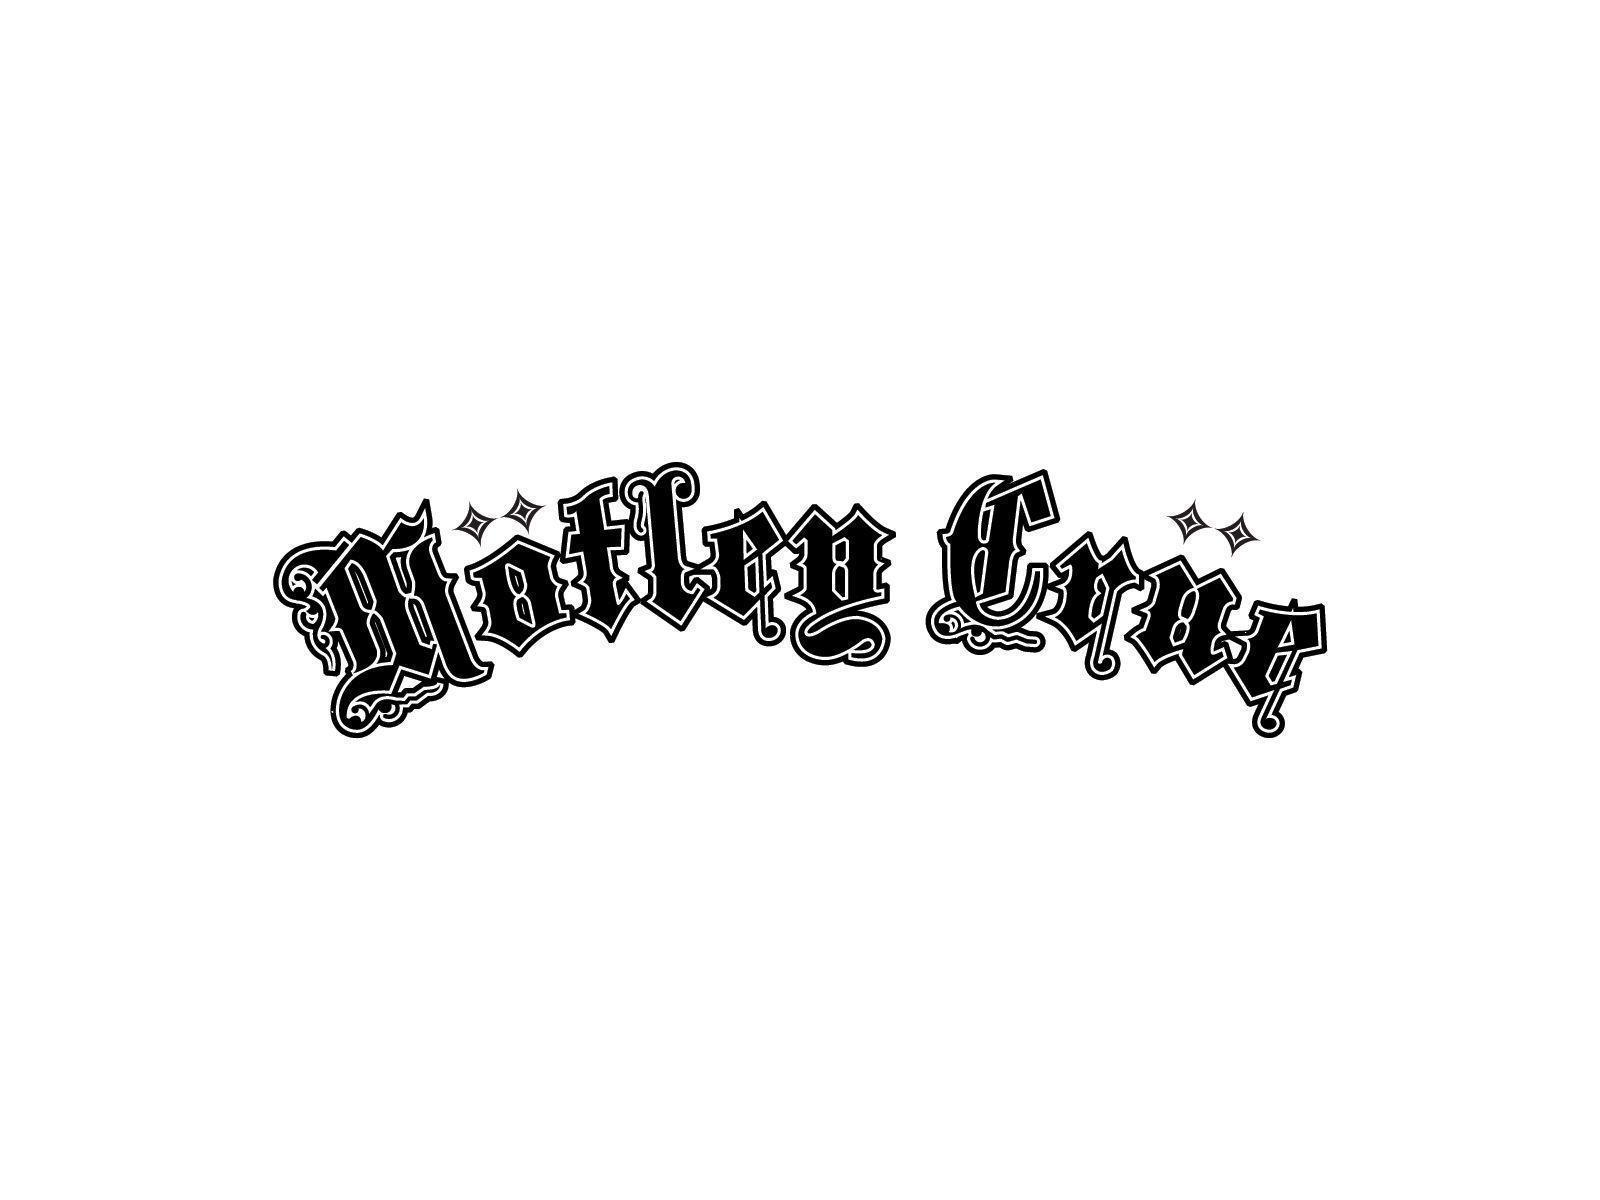 Motley Crue logo and wallpapers